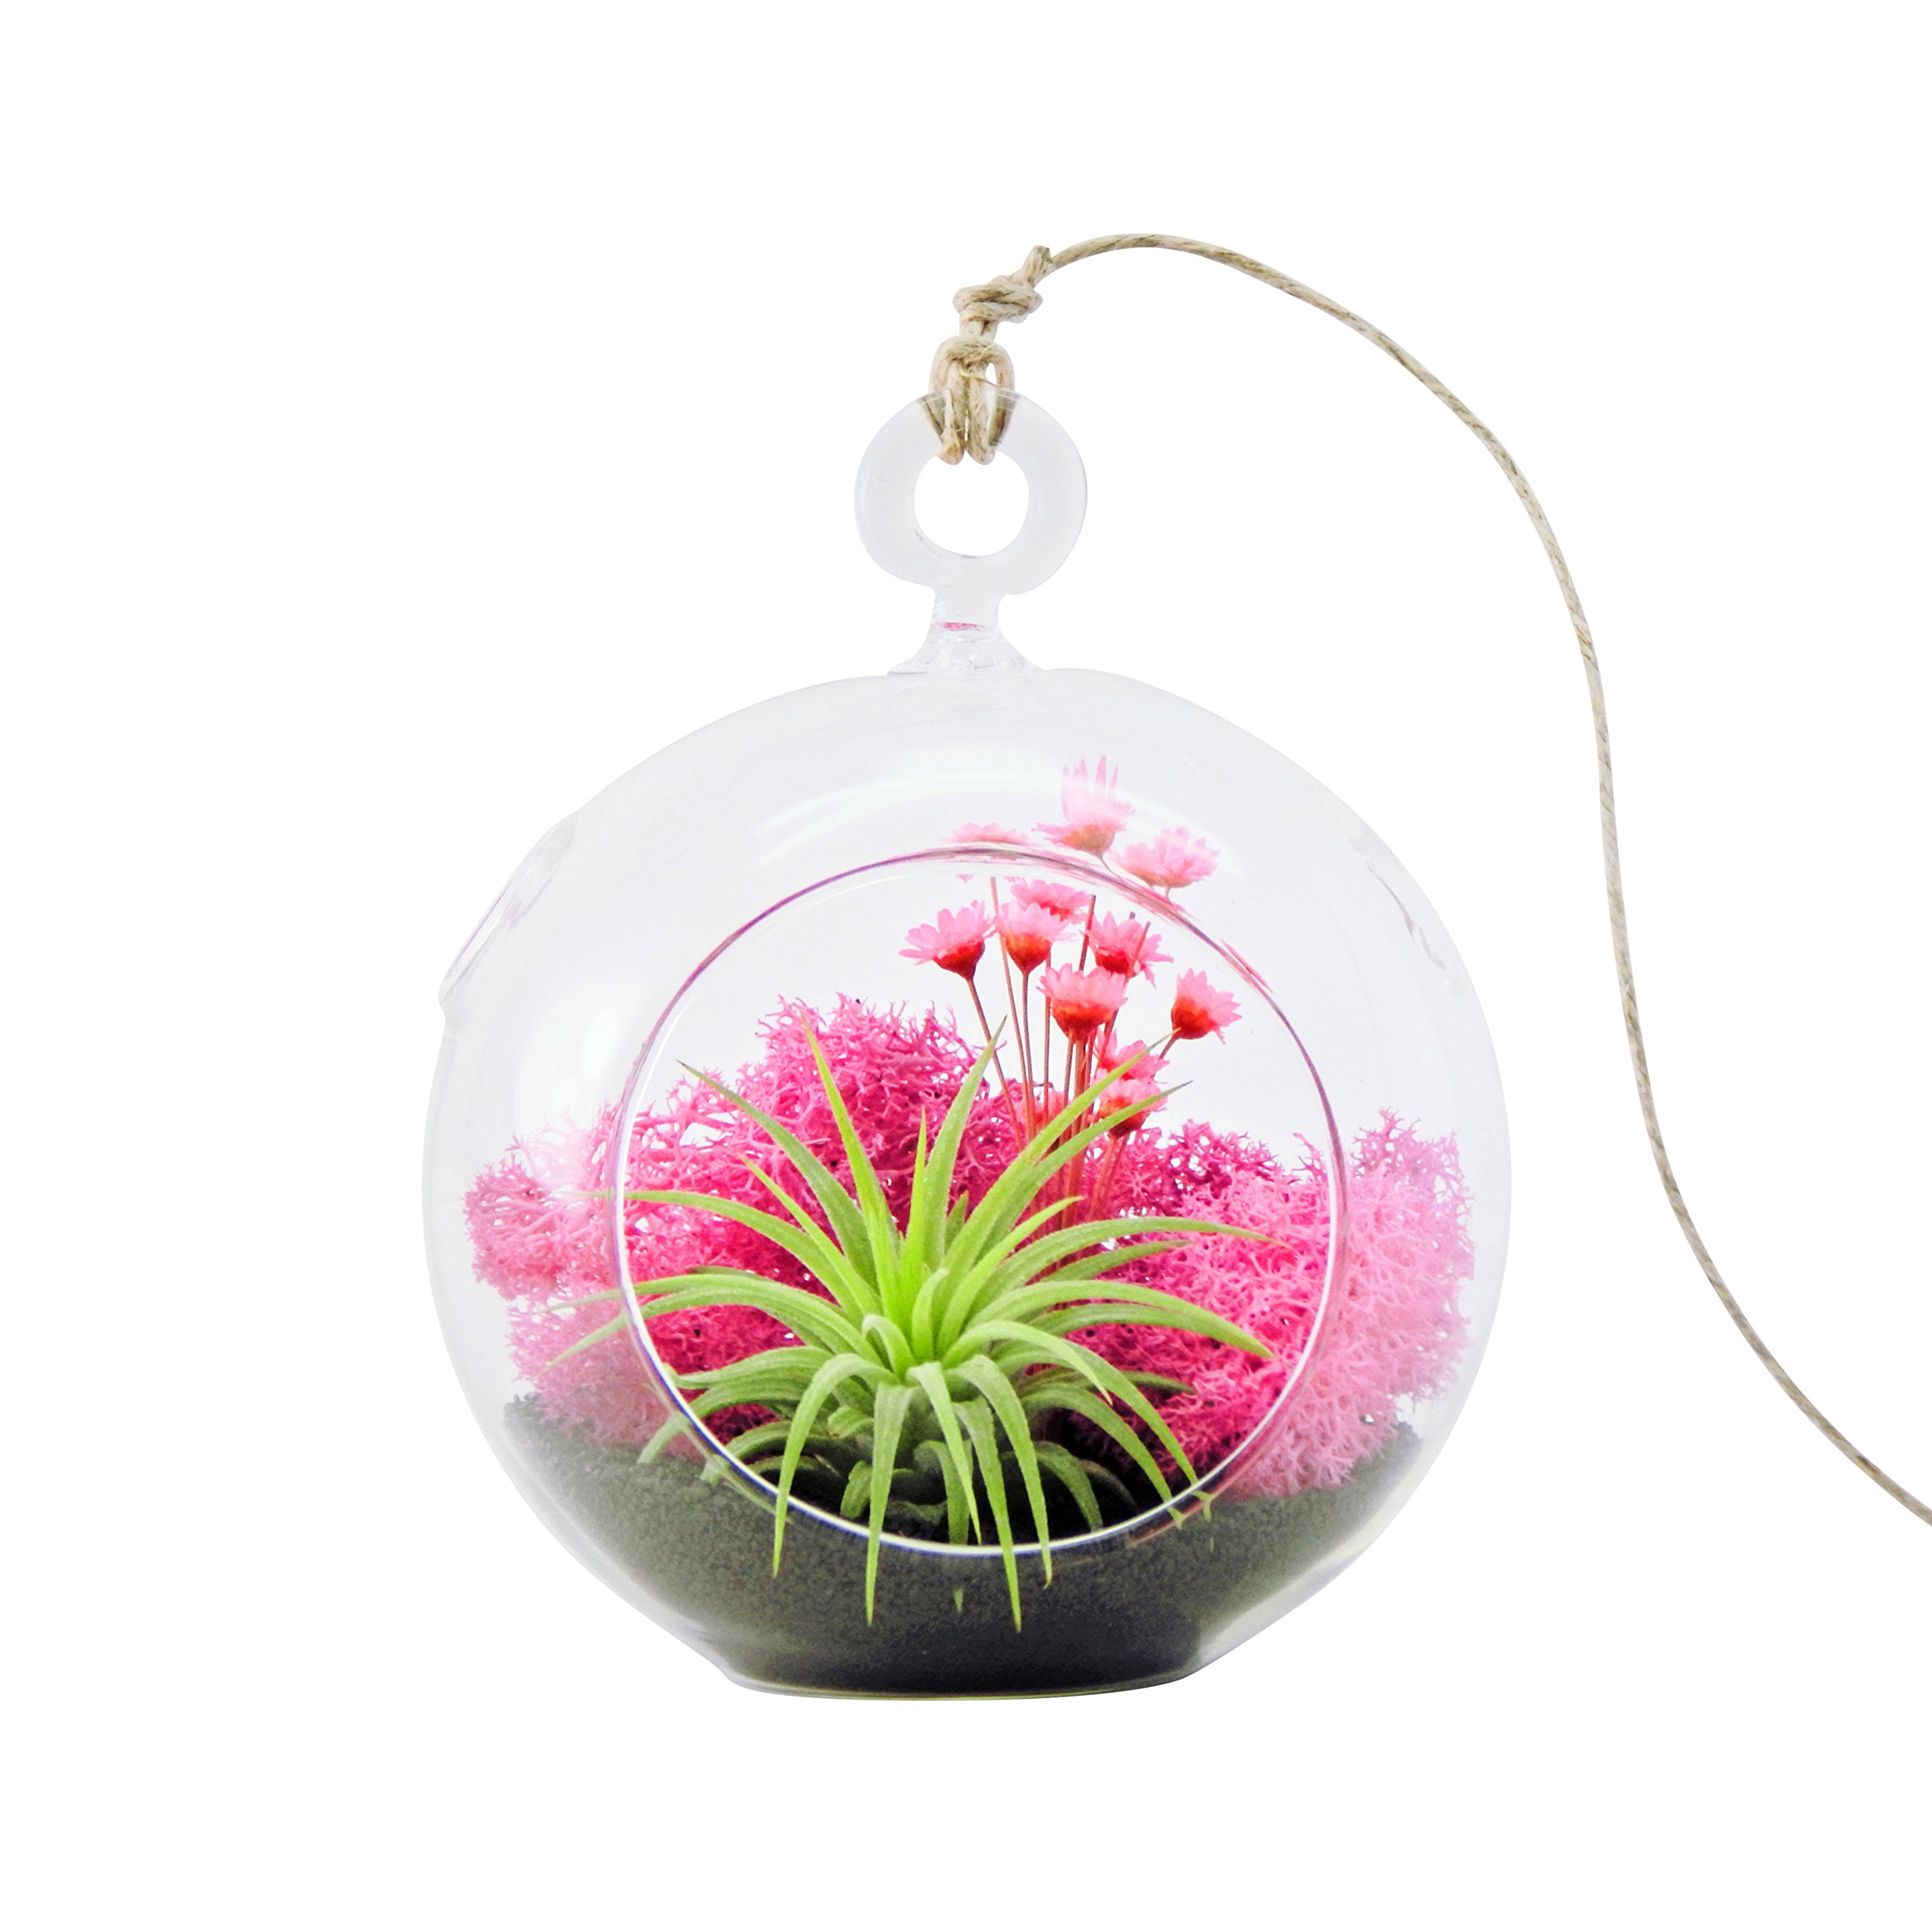 Bliss Gardens Air Plant Terrarium Kit with 4'' Round Glass/Pink Flowers/Tillandsia Mother's Day Gift/Pink Paradise